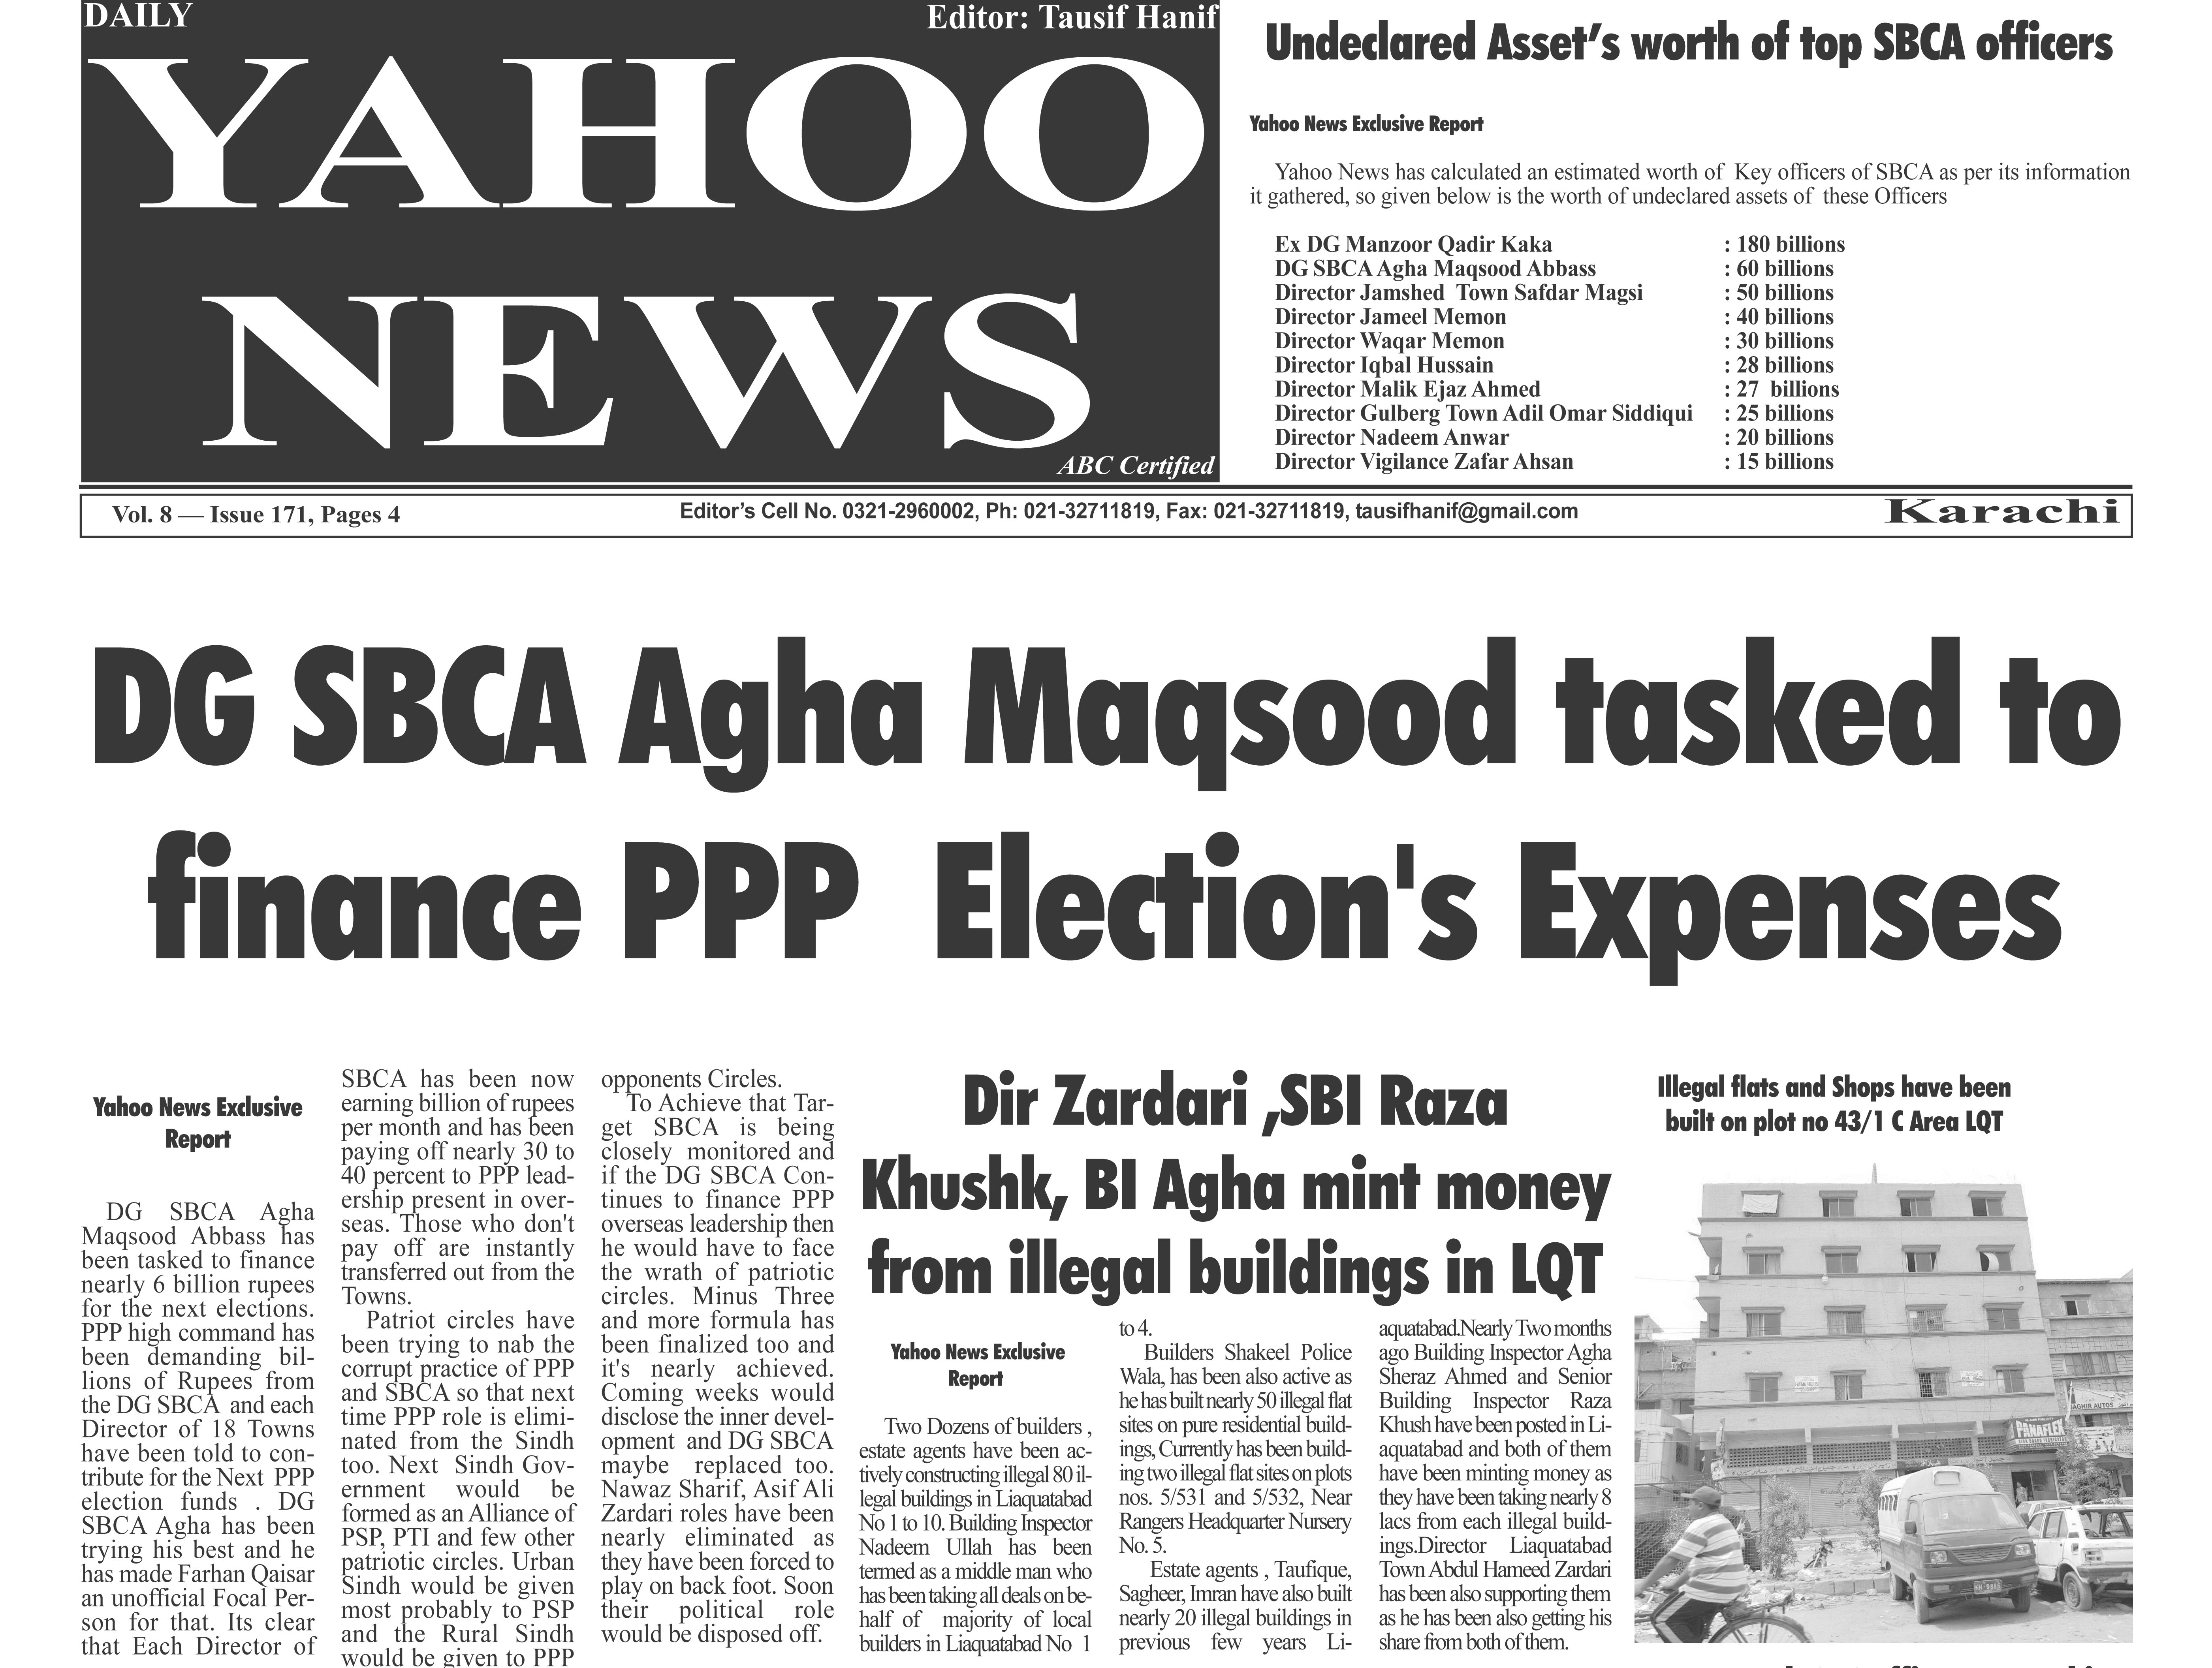 DG SBCA Agha tasked to finance PPP Election's Expenses